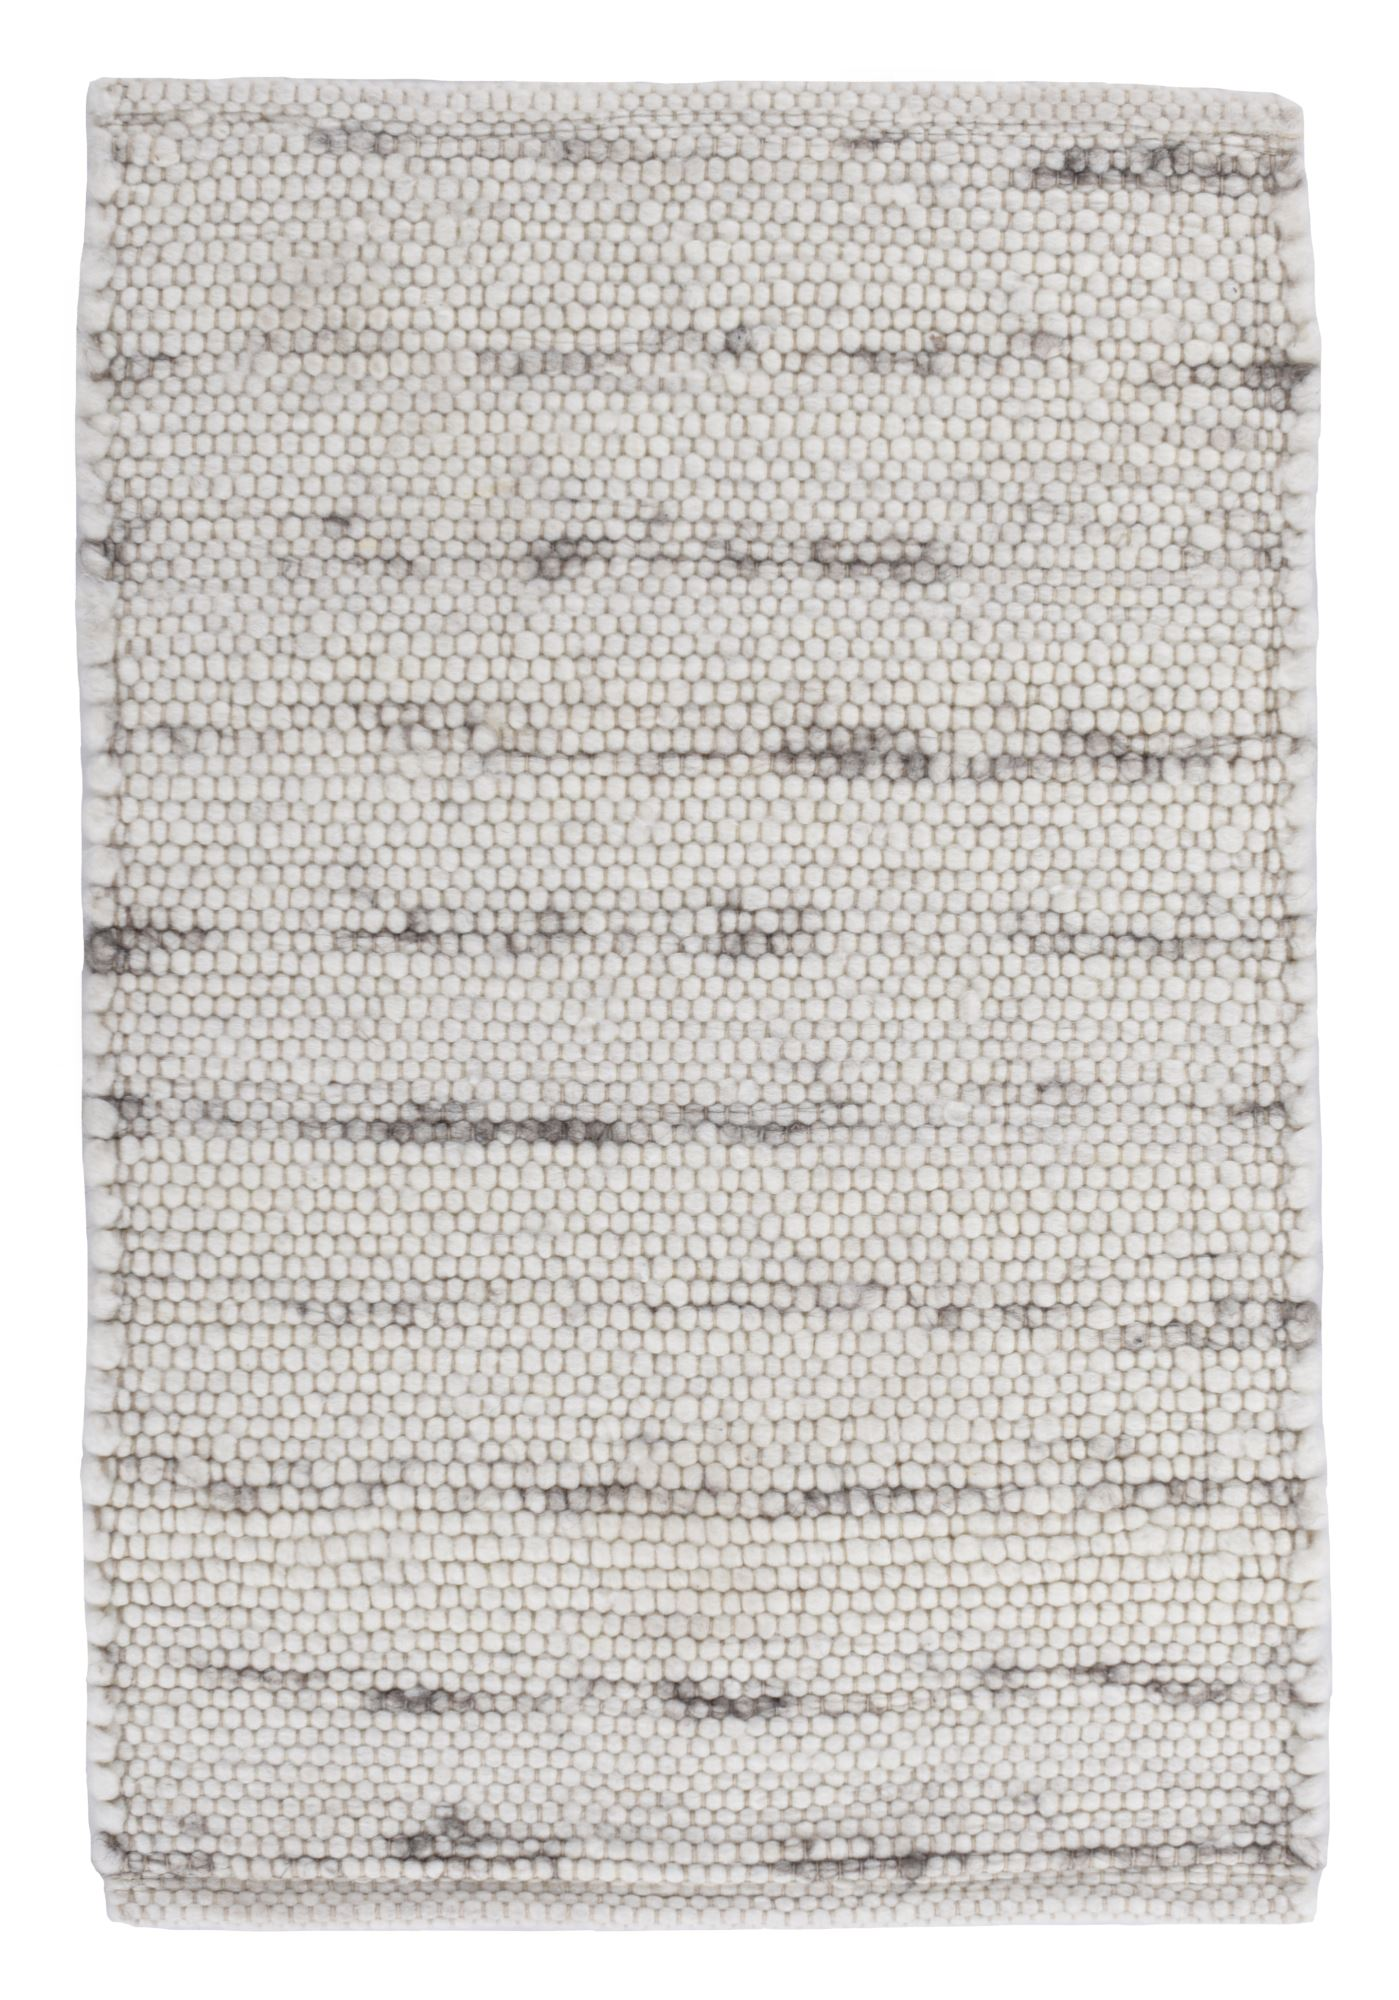 Tapis tissé à la main en laine naturelle natural grey 160x230